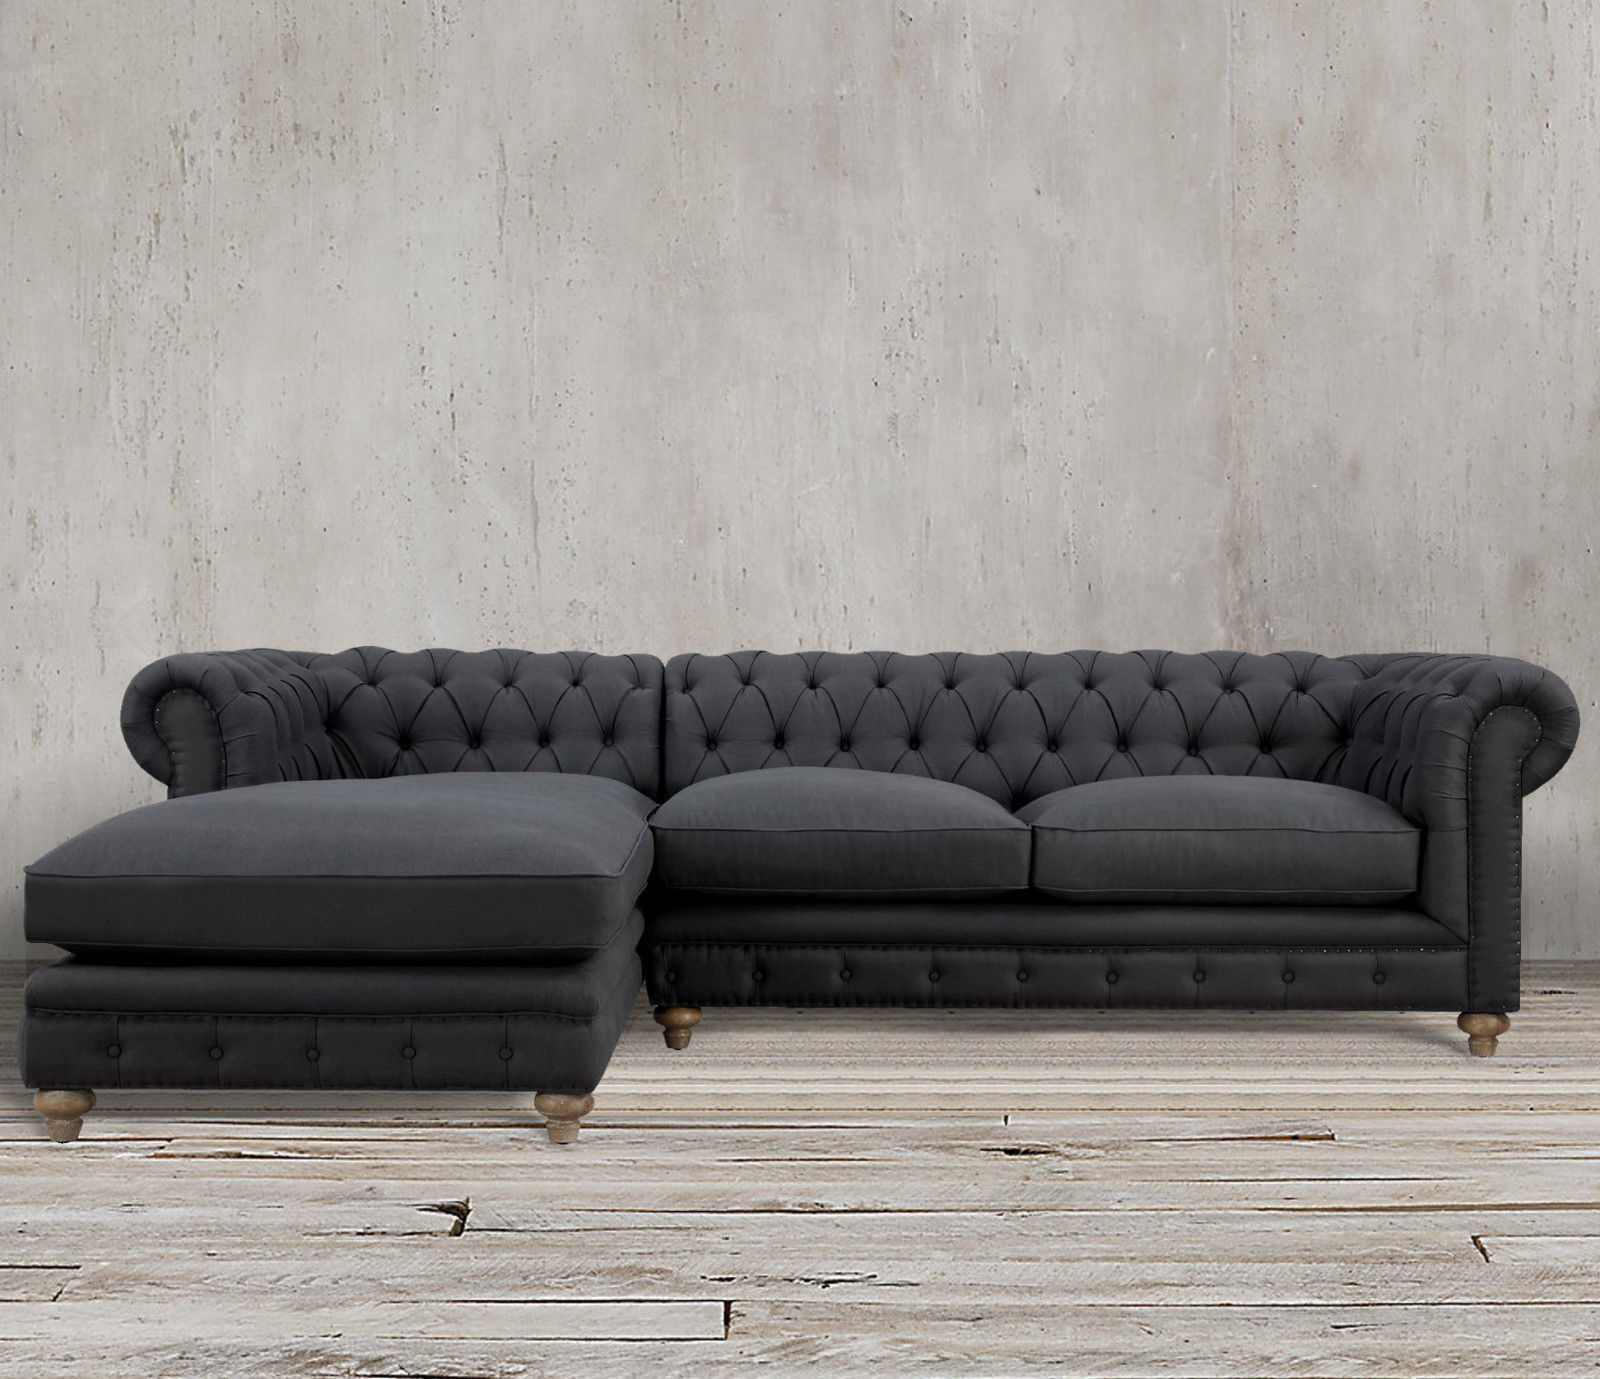 Chesterfield Sectional Sofa Tufted Chaise Tuxedo Gray Linen Couch Nail Head LAF Sofas